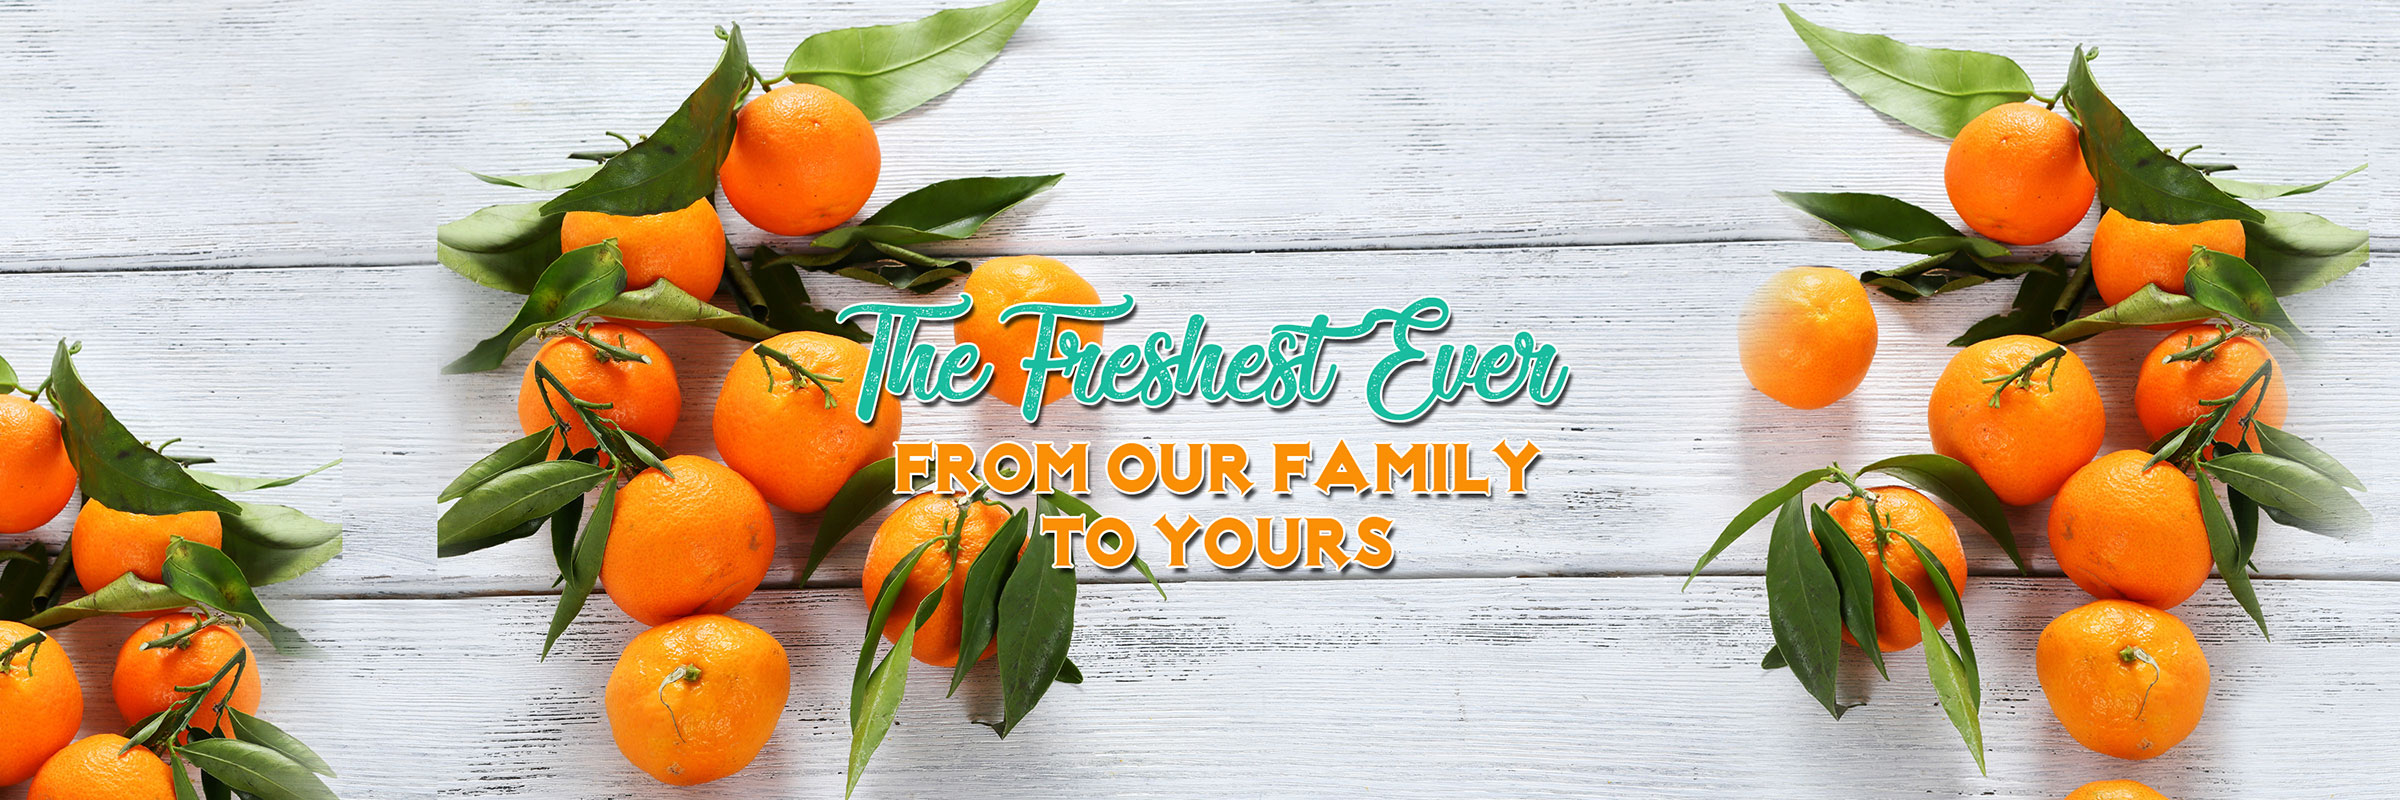 Super A Foods - The Freshest Ever